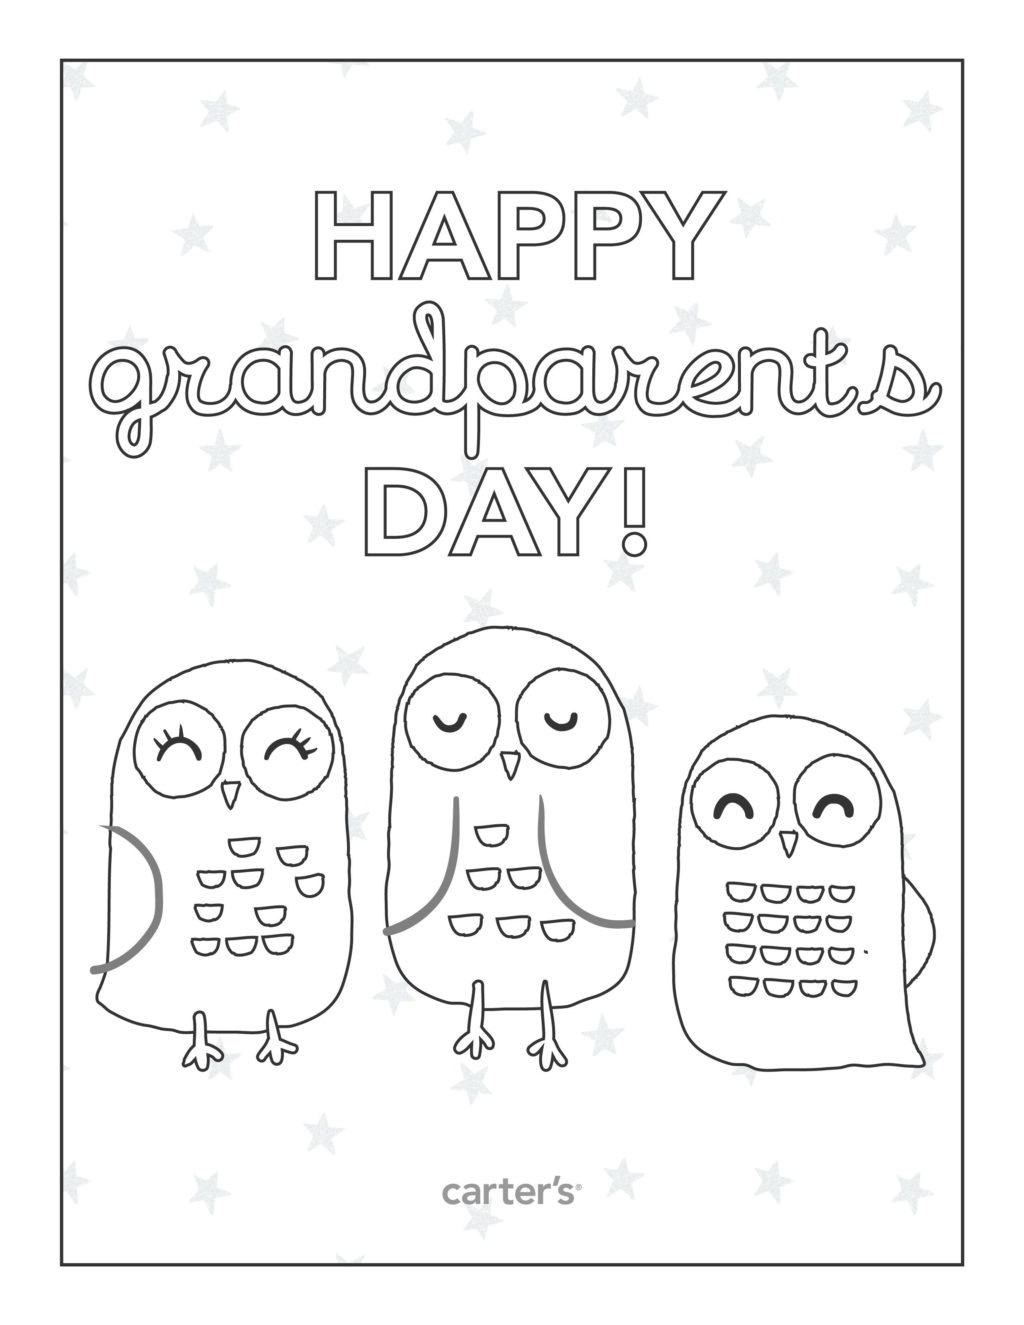 Coloring Book World ~ Grandparents Day Coloring Pages Astonishing - Grandparents Certificate Free Printable